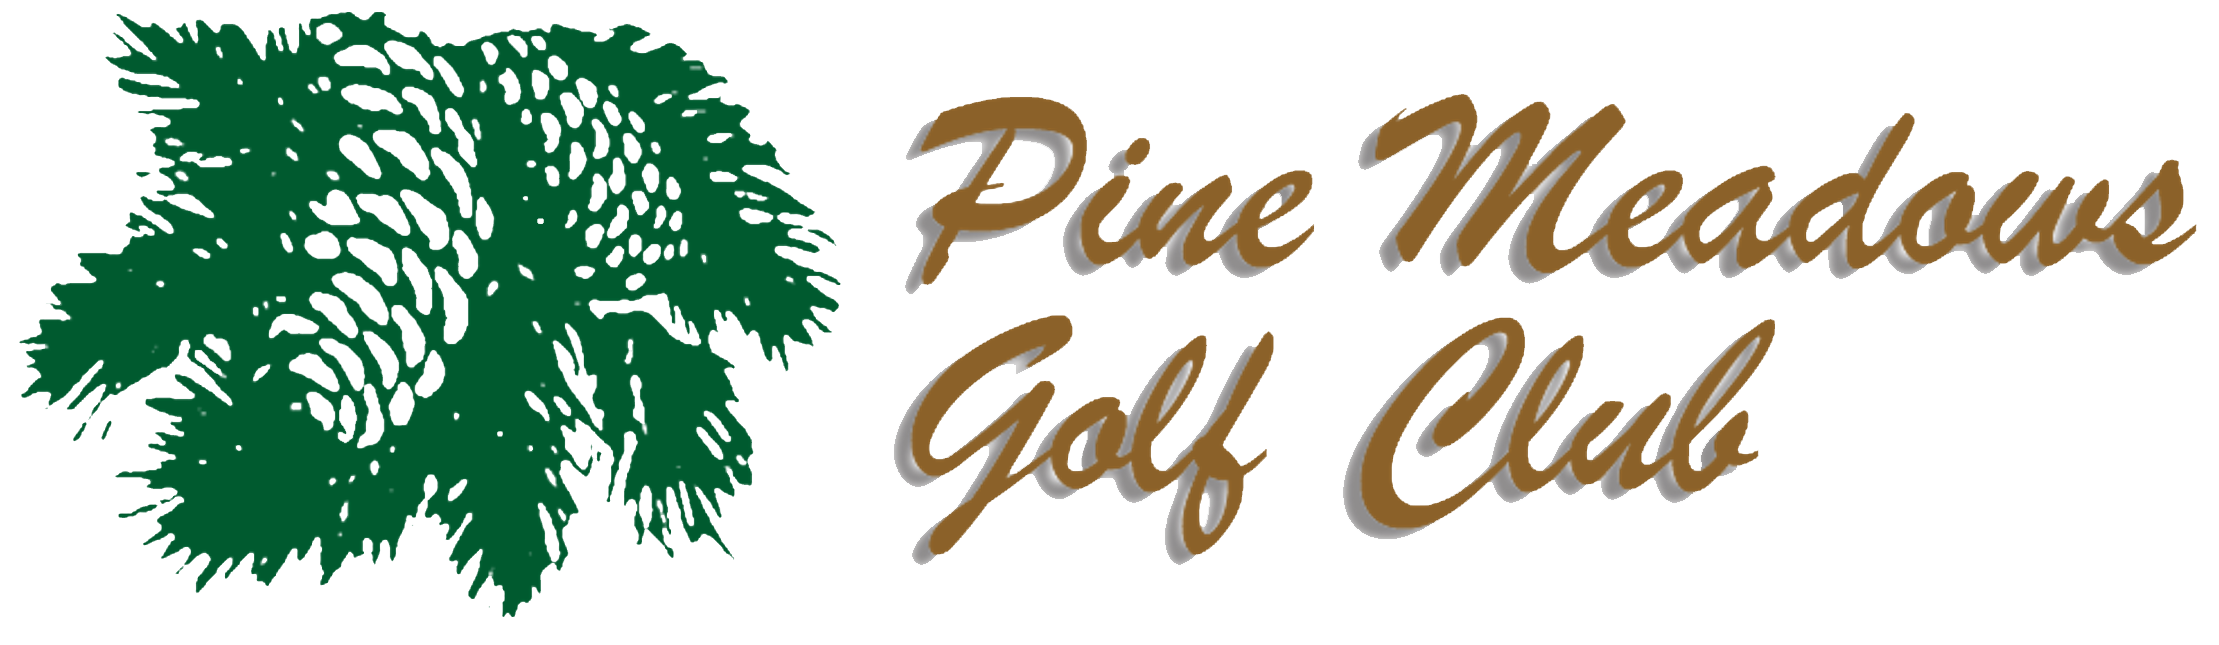 Pine Meadows Golf Club Logo Header